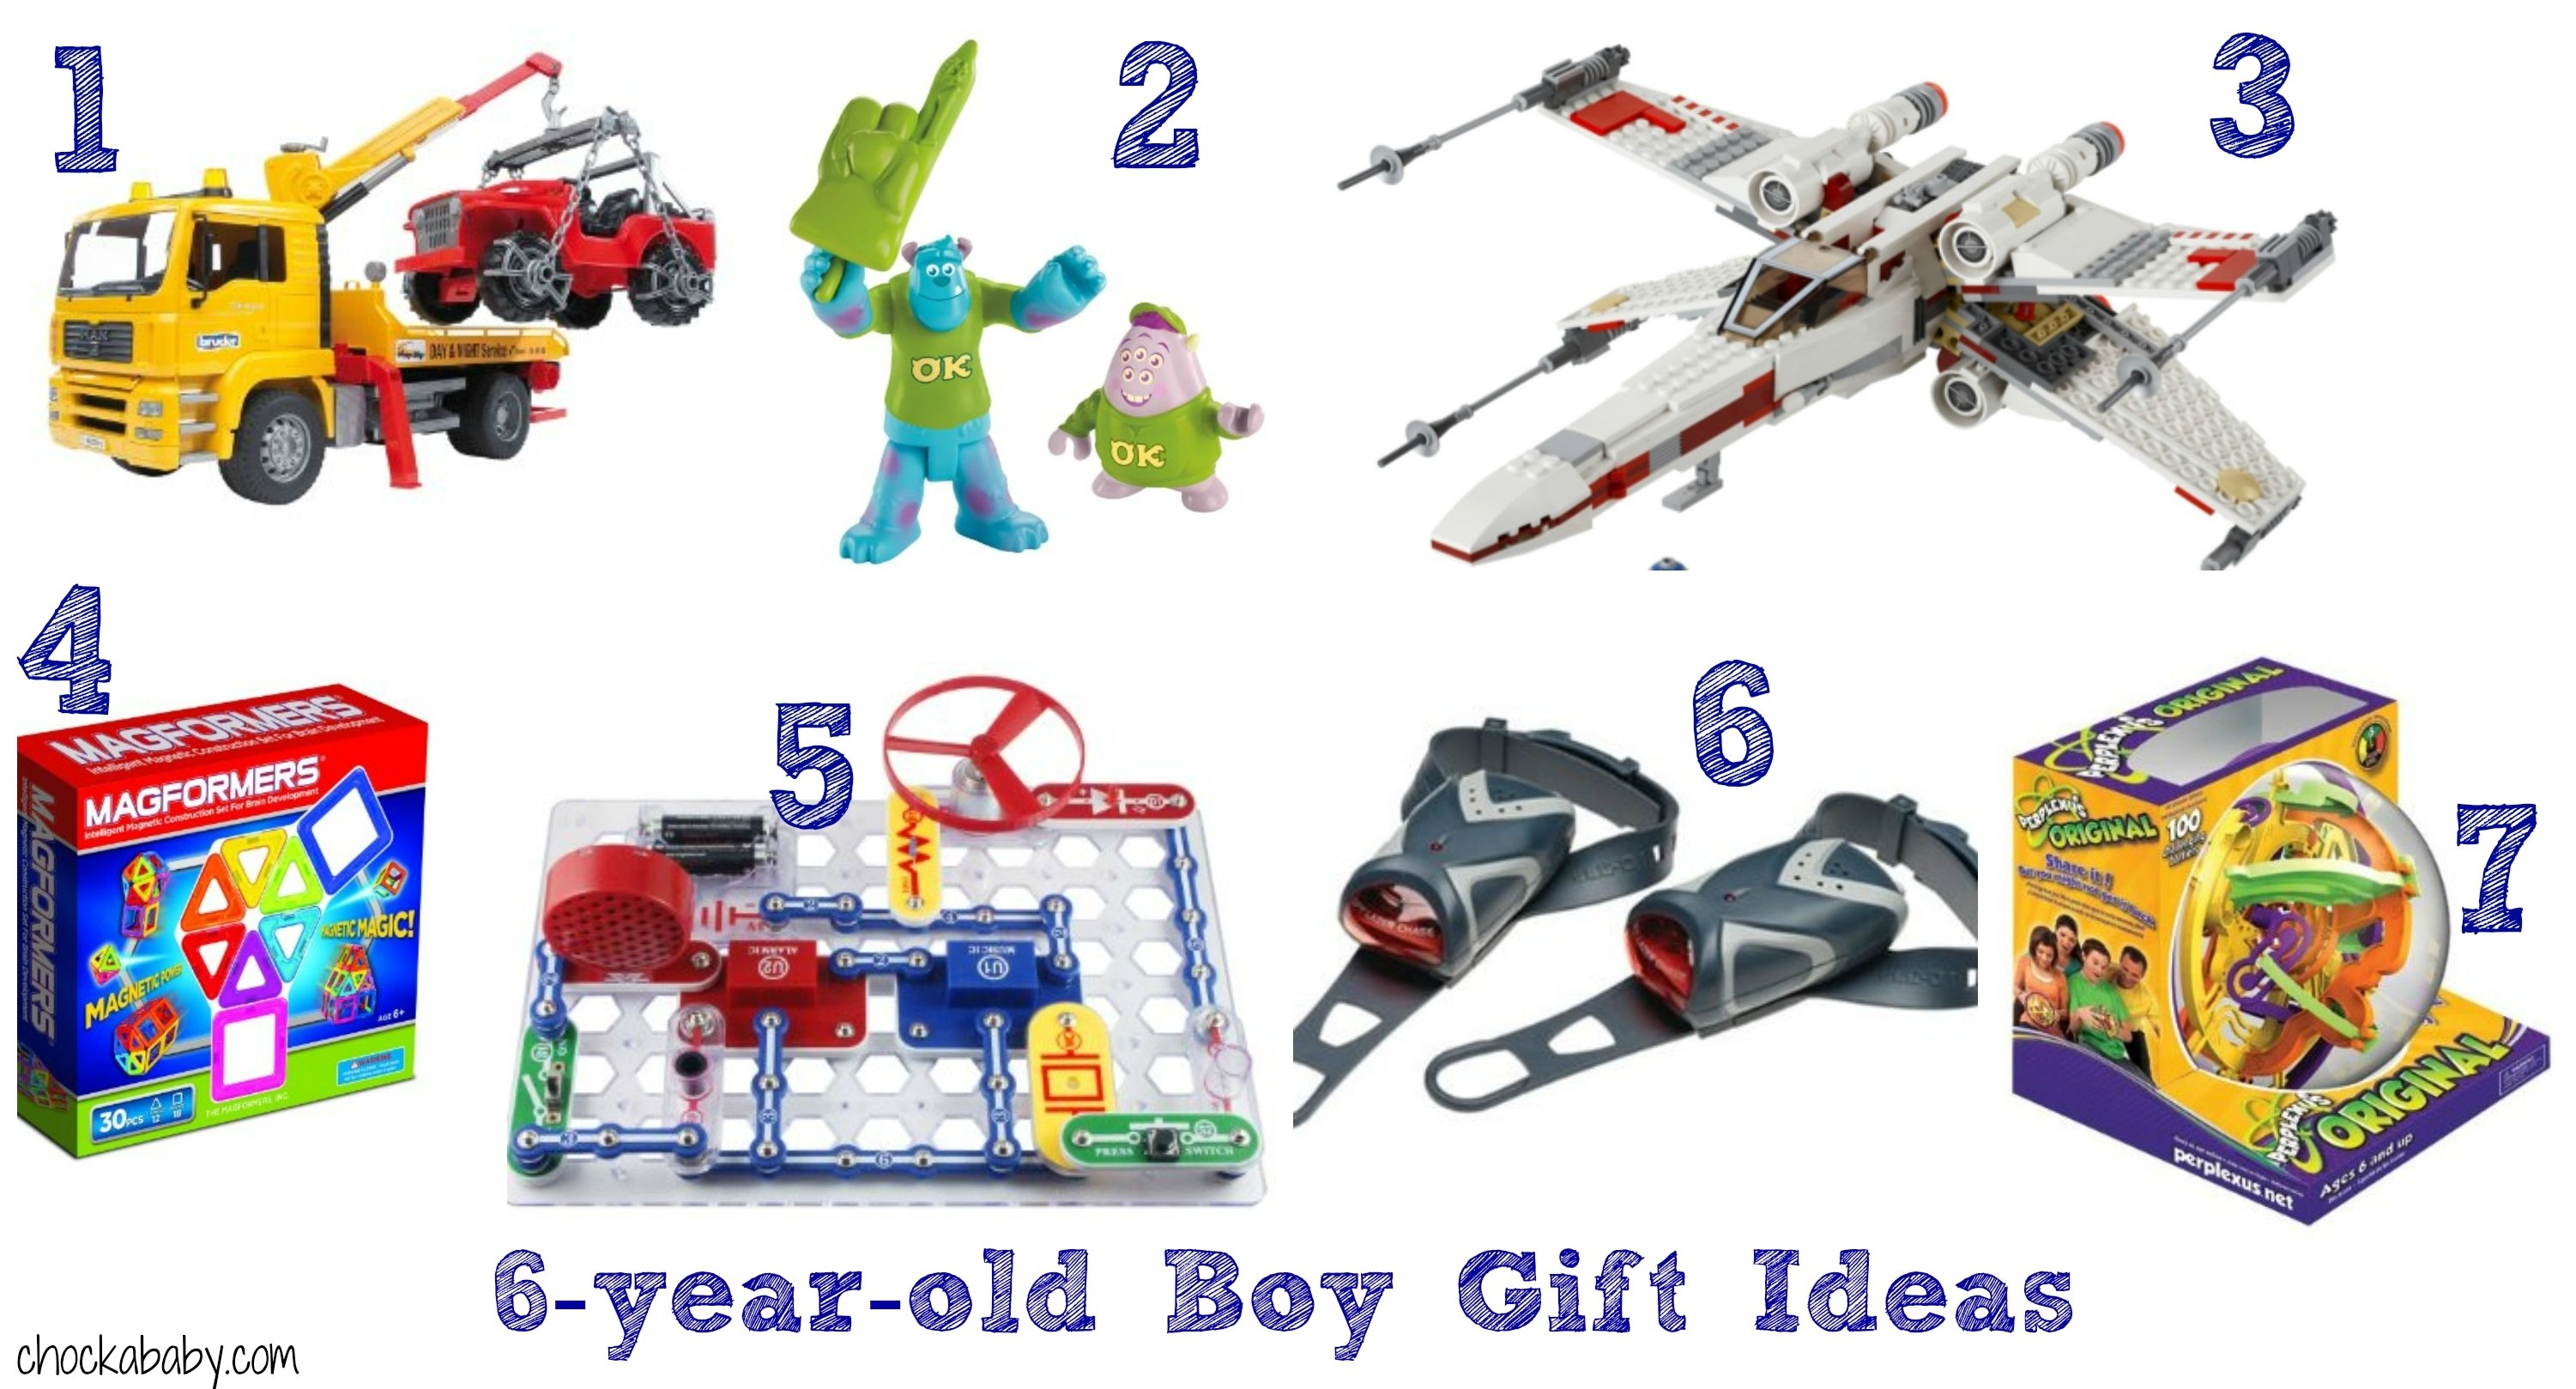 10 Famous Birthday Gift Ideas For 14 Year Old Boy year old boy birthday gift ideas home design ideas 10